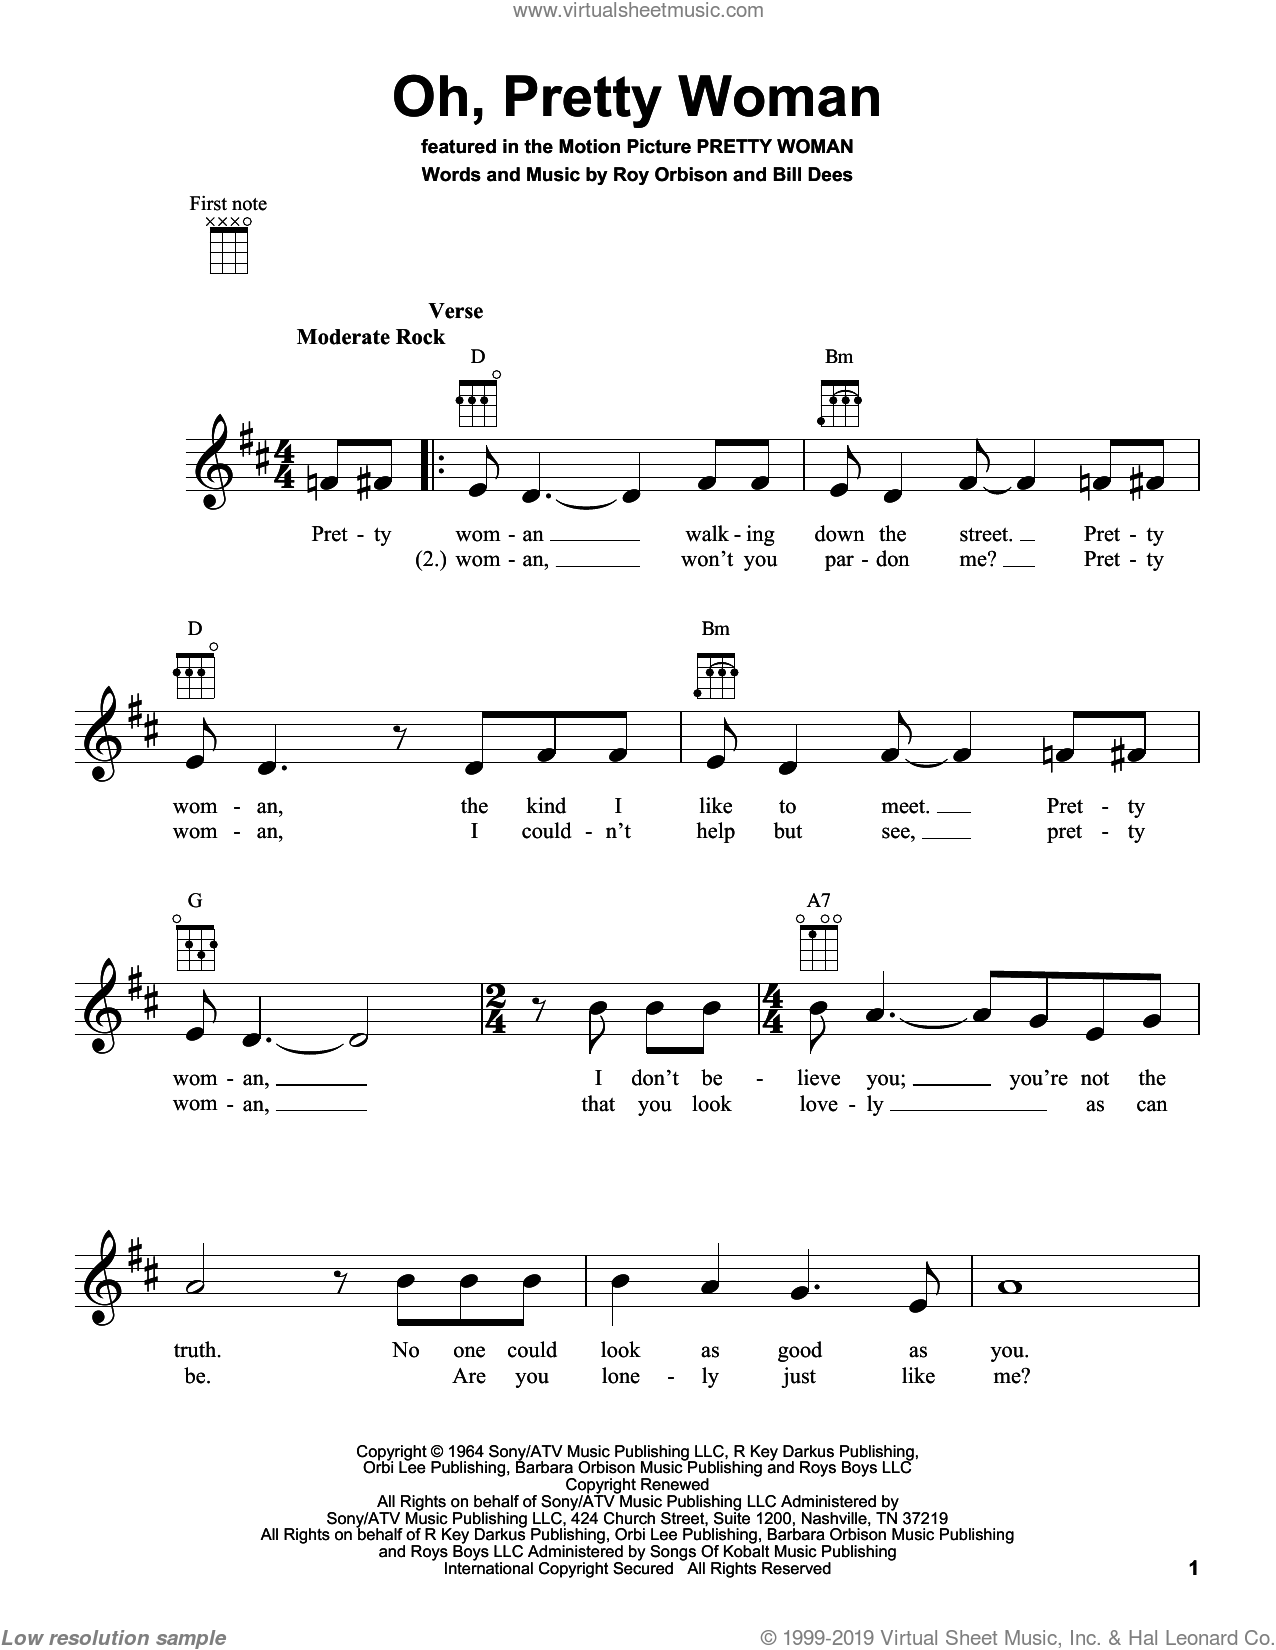 Oh, Pretty Woman sheet music for ukulele by Roy Orbison